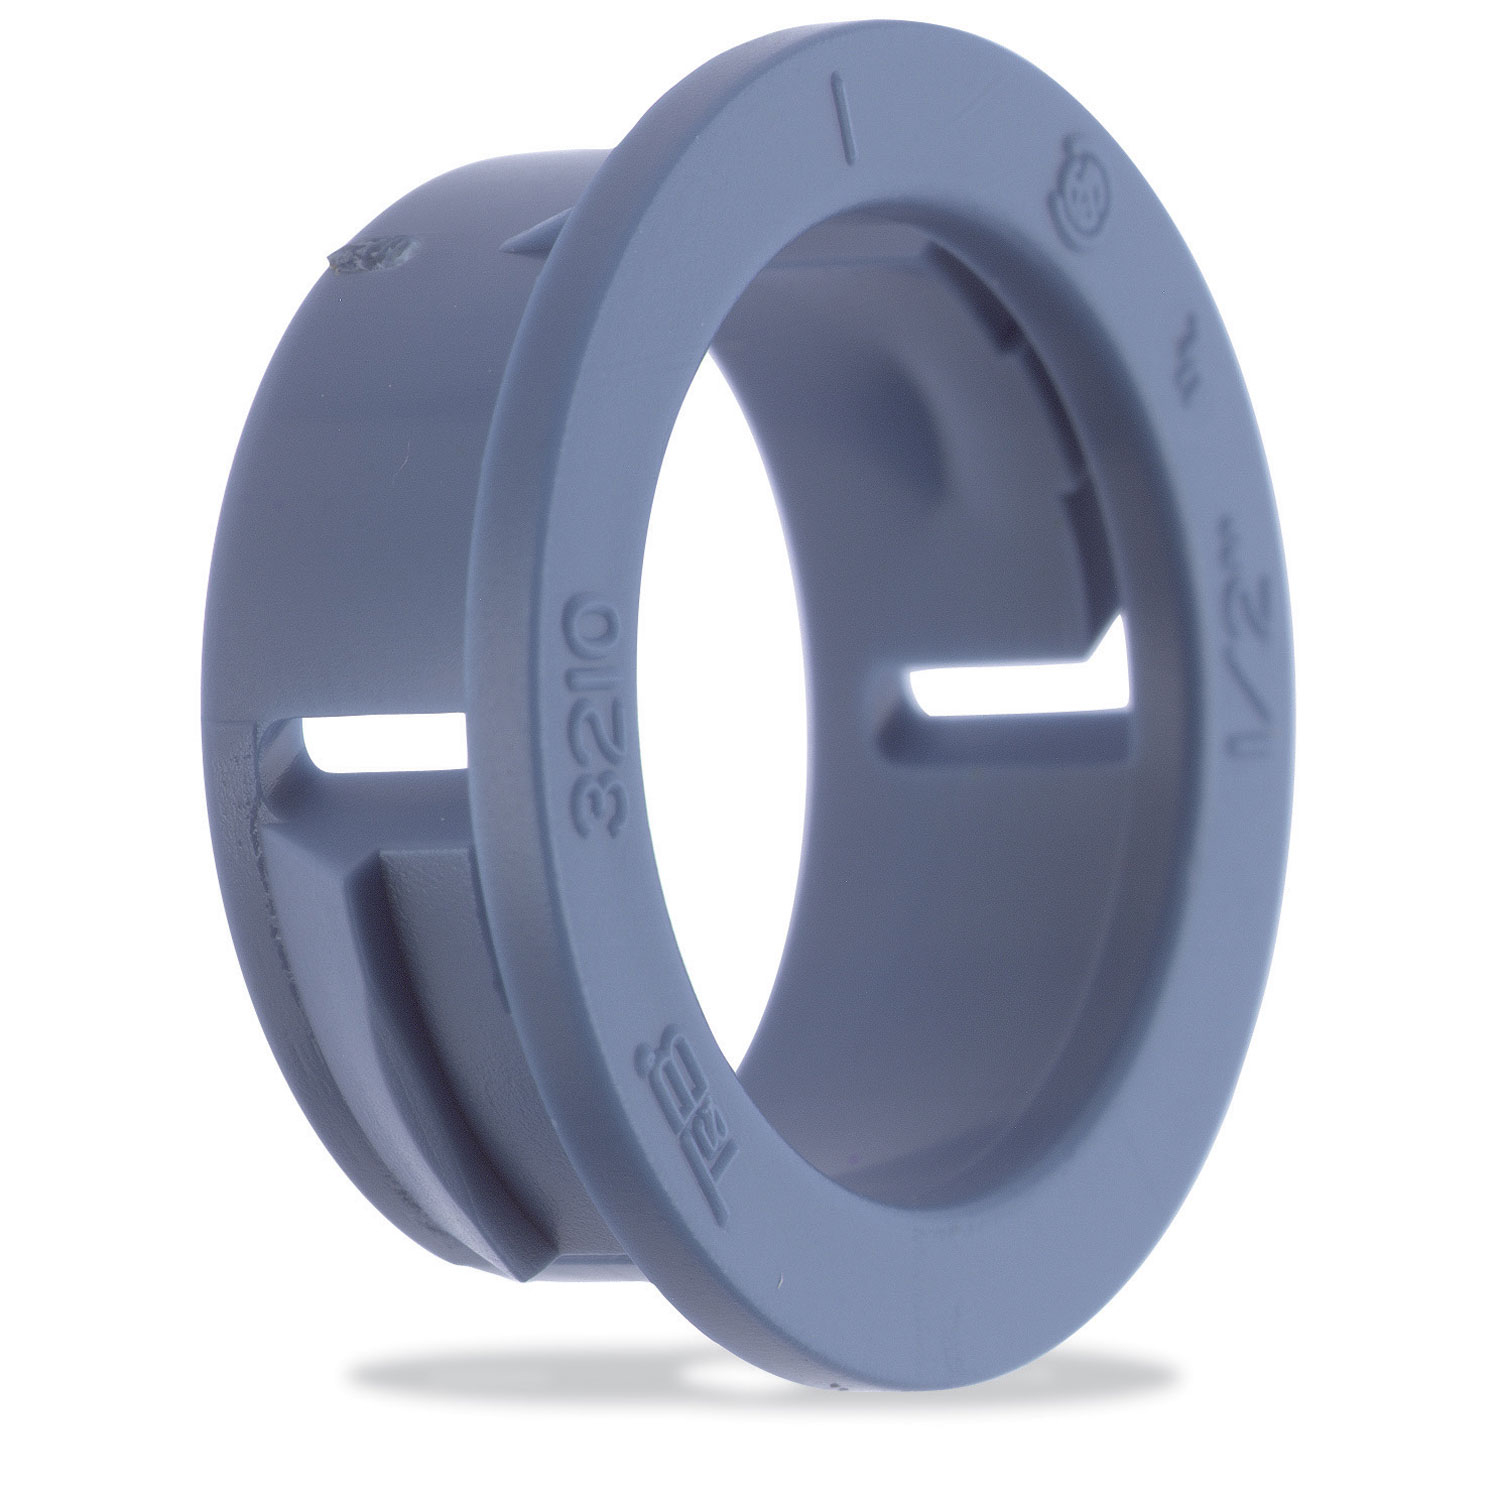 T&B,3210,T&B Industrial Fitting 3210 1-Piece Conduit Bushing, 1/2 in Trade, Polycarbonate